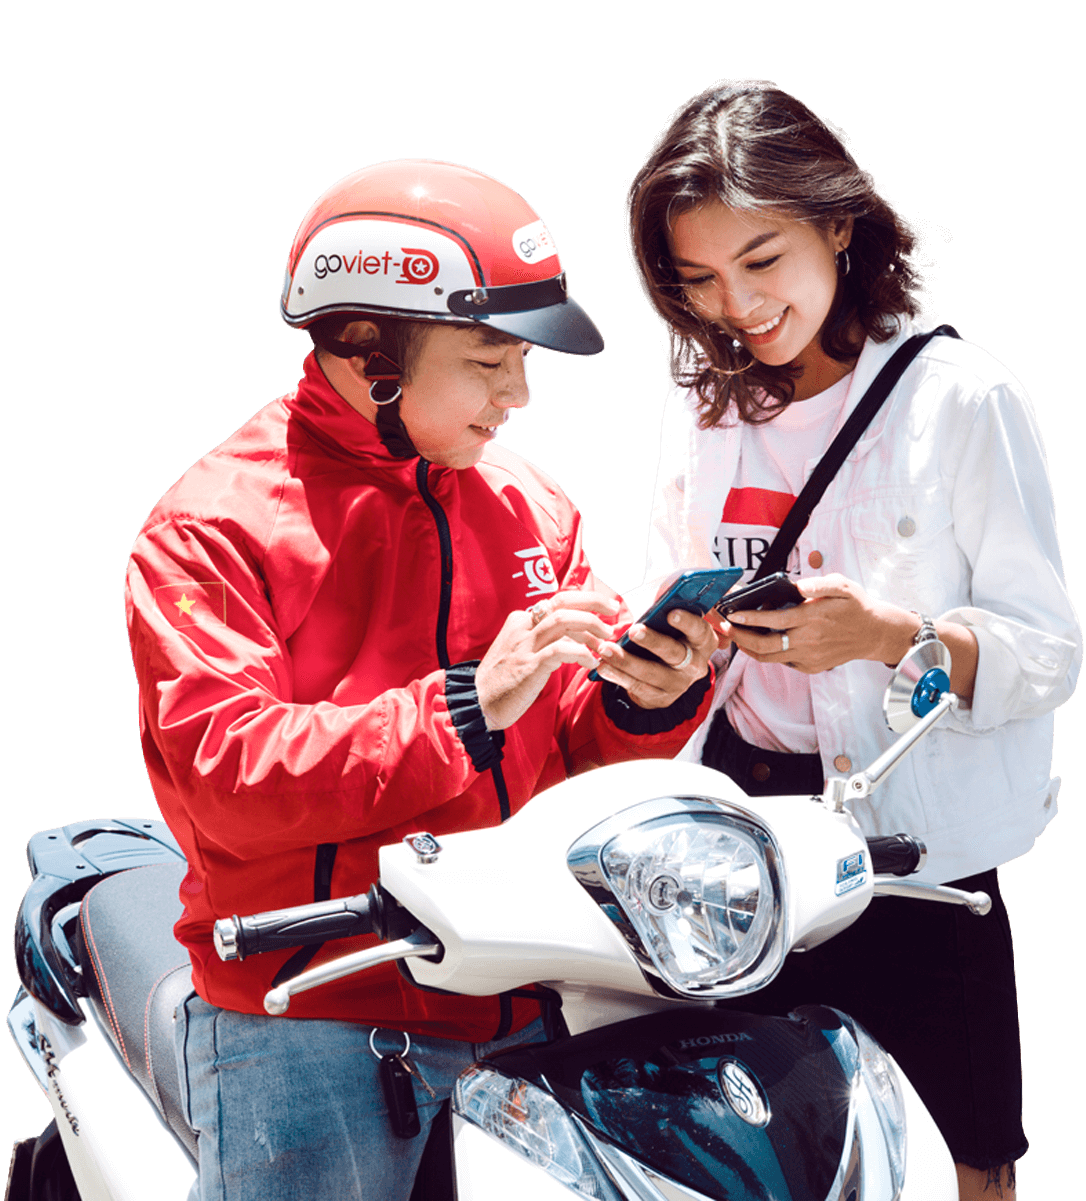 Go Pay Indonesia: Vietnam's Fintech Ride Hailing Market: Grab Goes Consumer